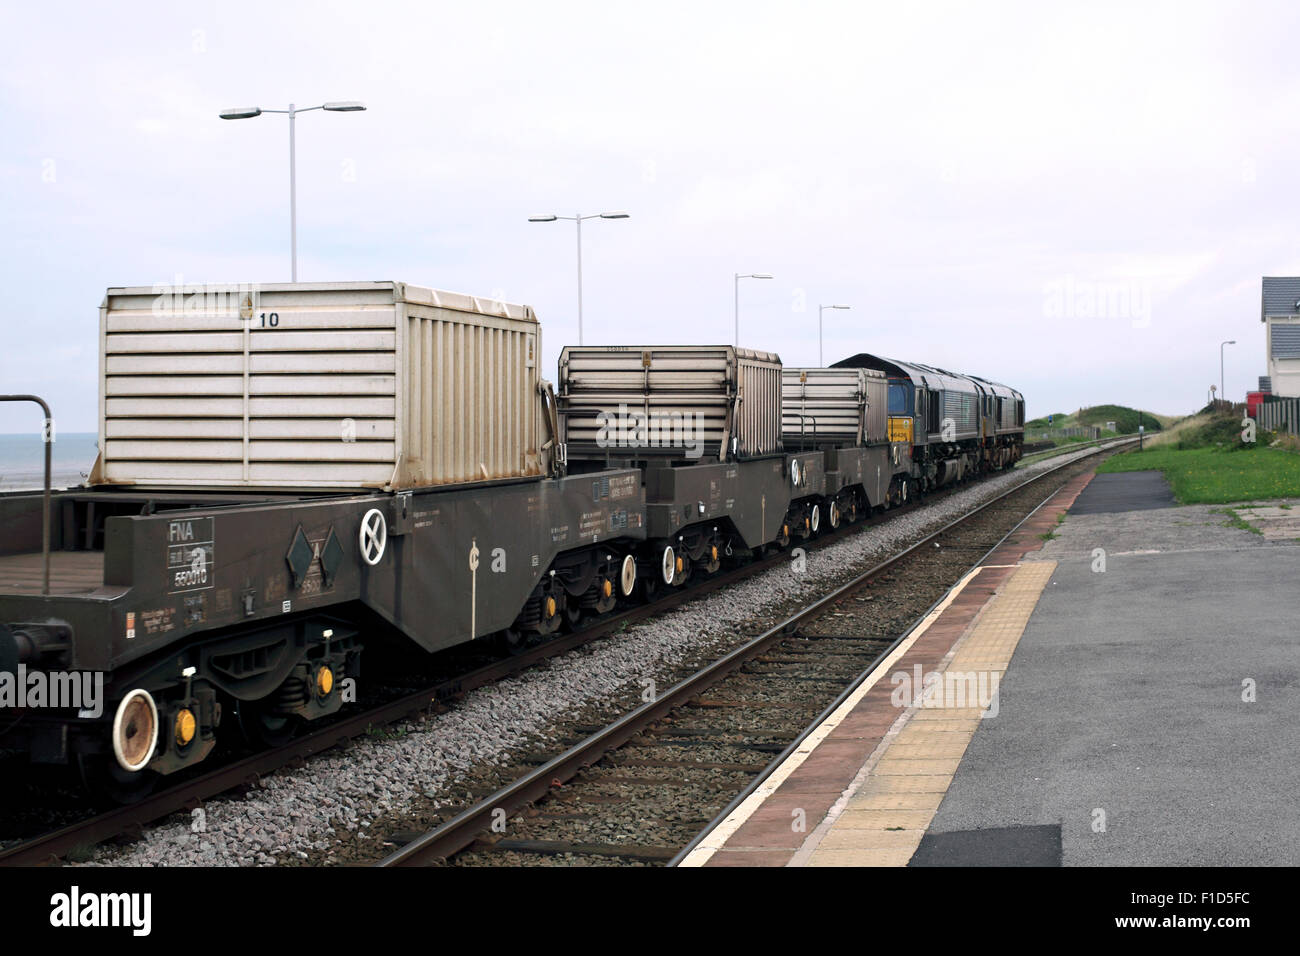 A train transporting three flasks of irradiated nuclear fuel ('nuclear waste') passes Seascale, Cumbria, - Stock Image